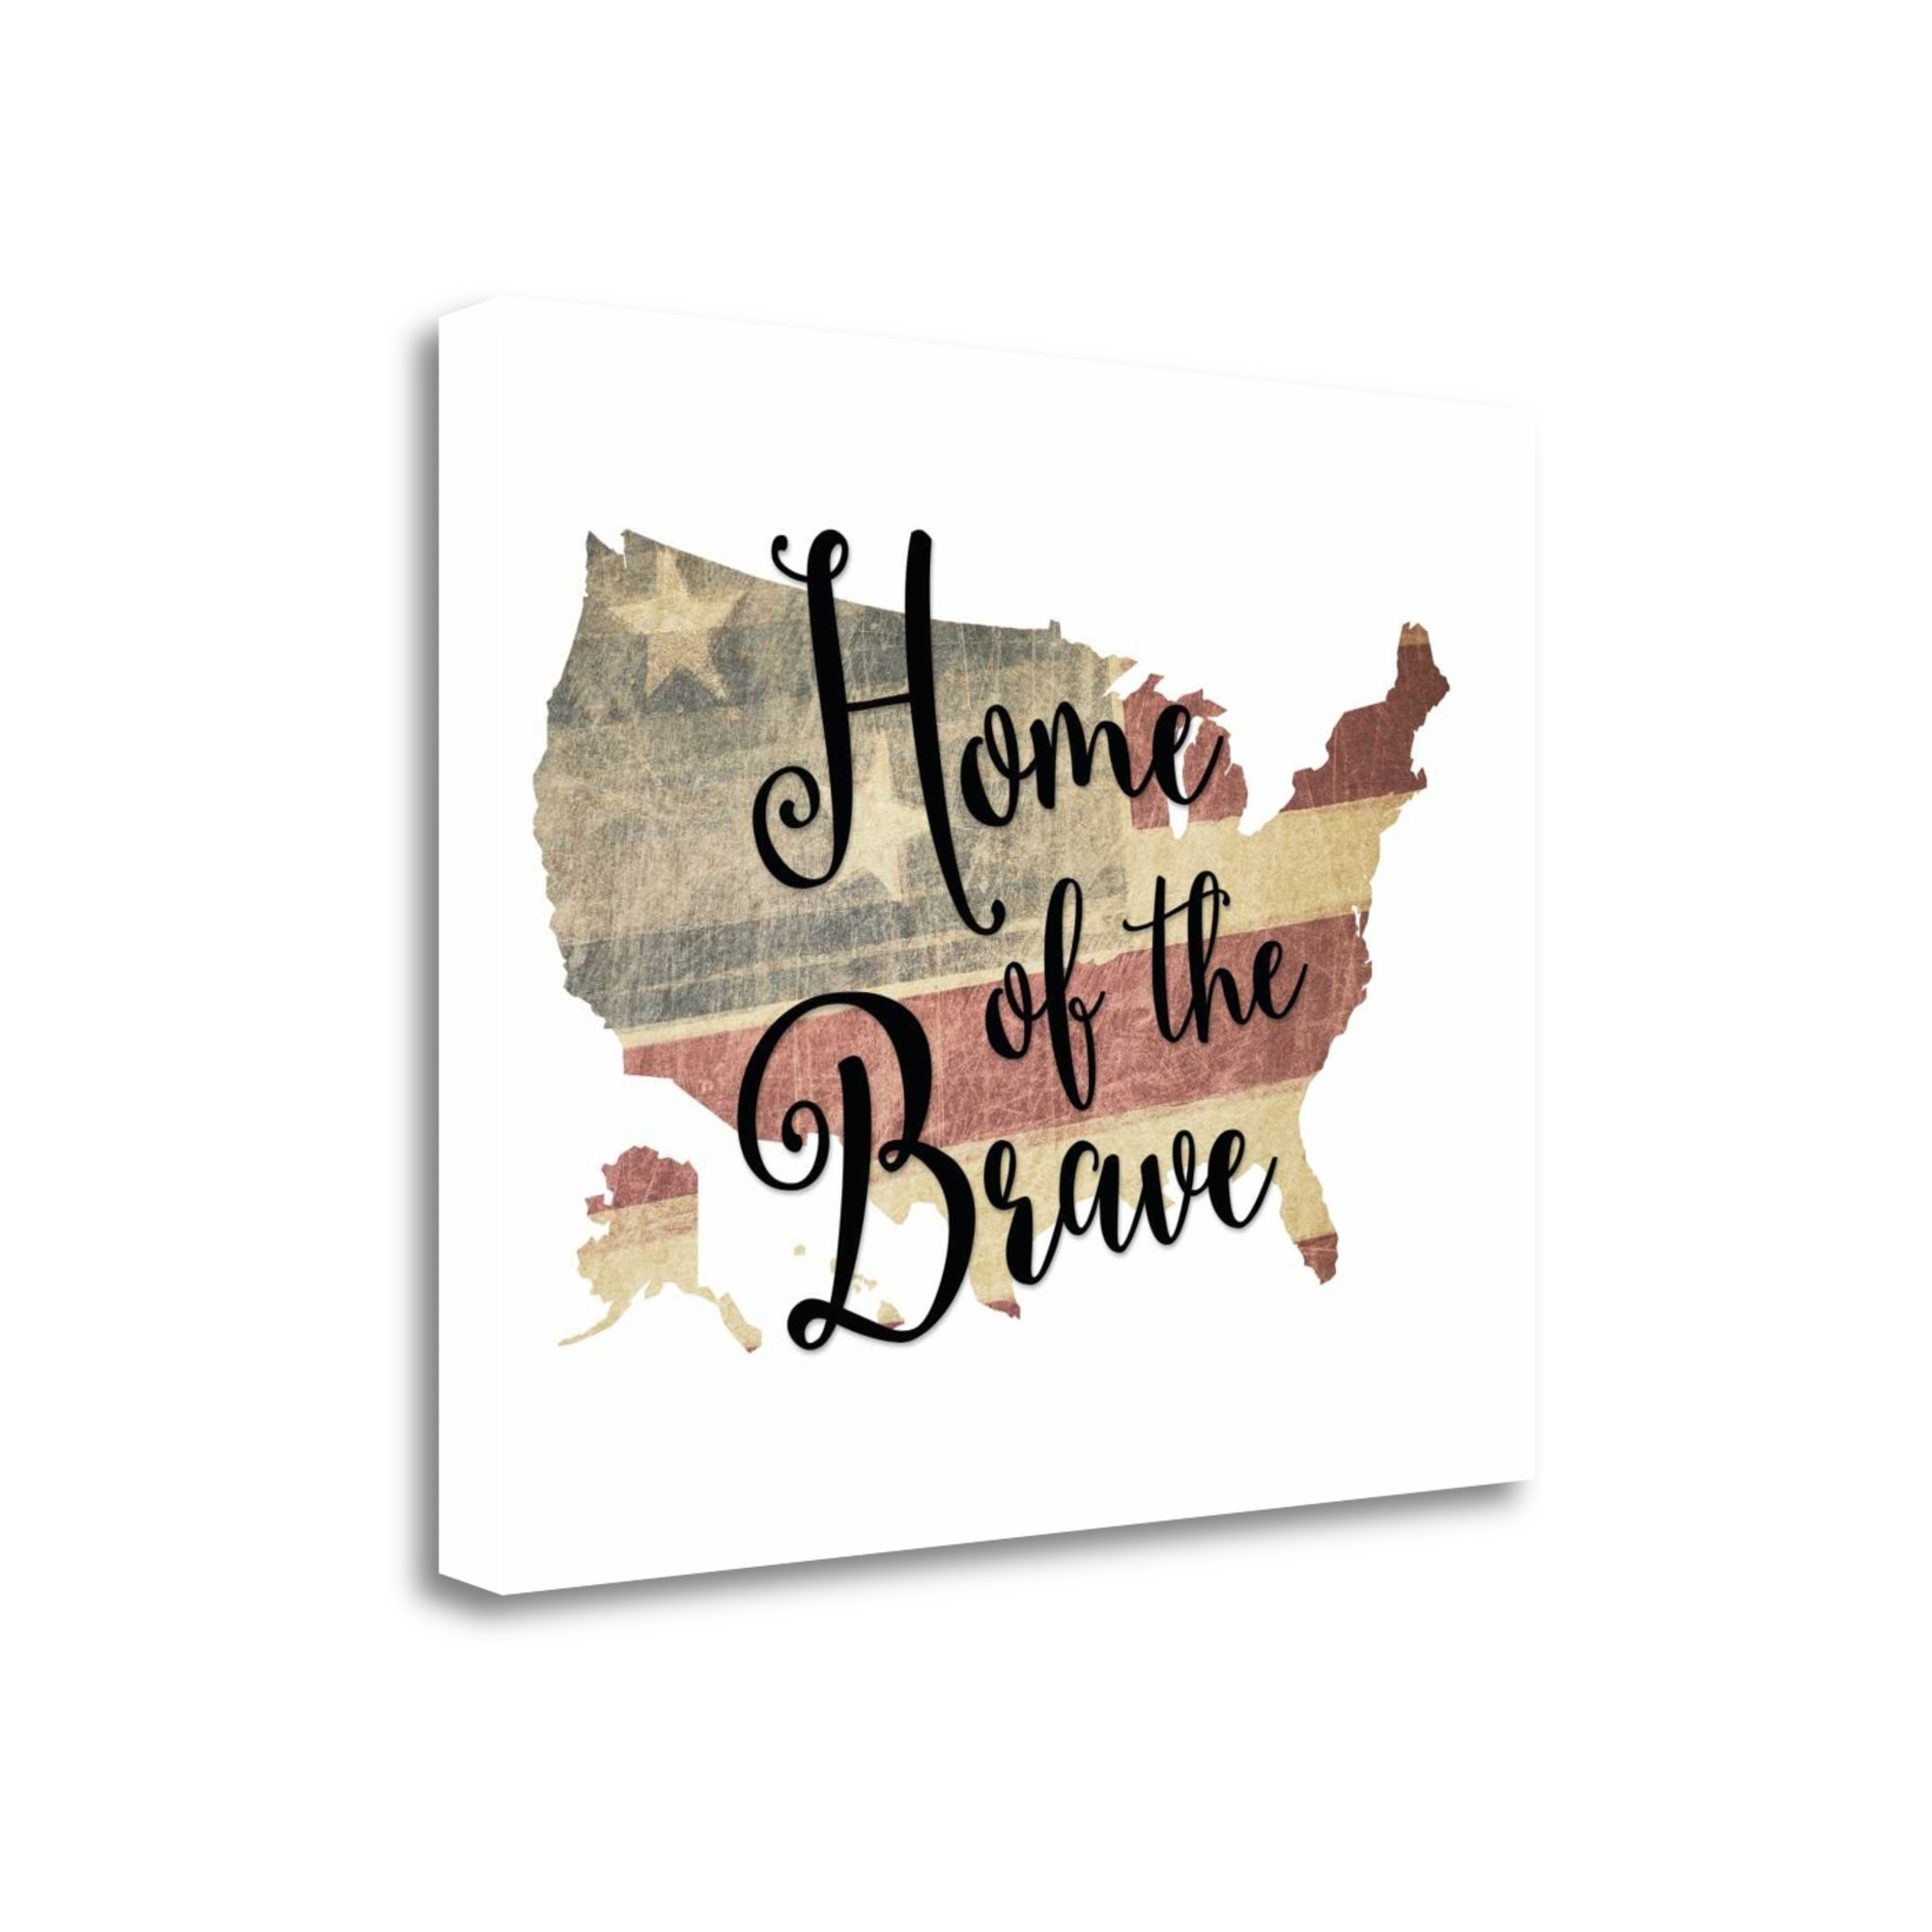 "Home Of The Brave By Tara Moss, 20"" x 16\"" Fine Art Giclee Print on Gallery Wrap Canvas, Ready to Hang"